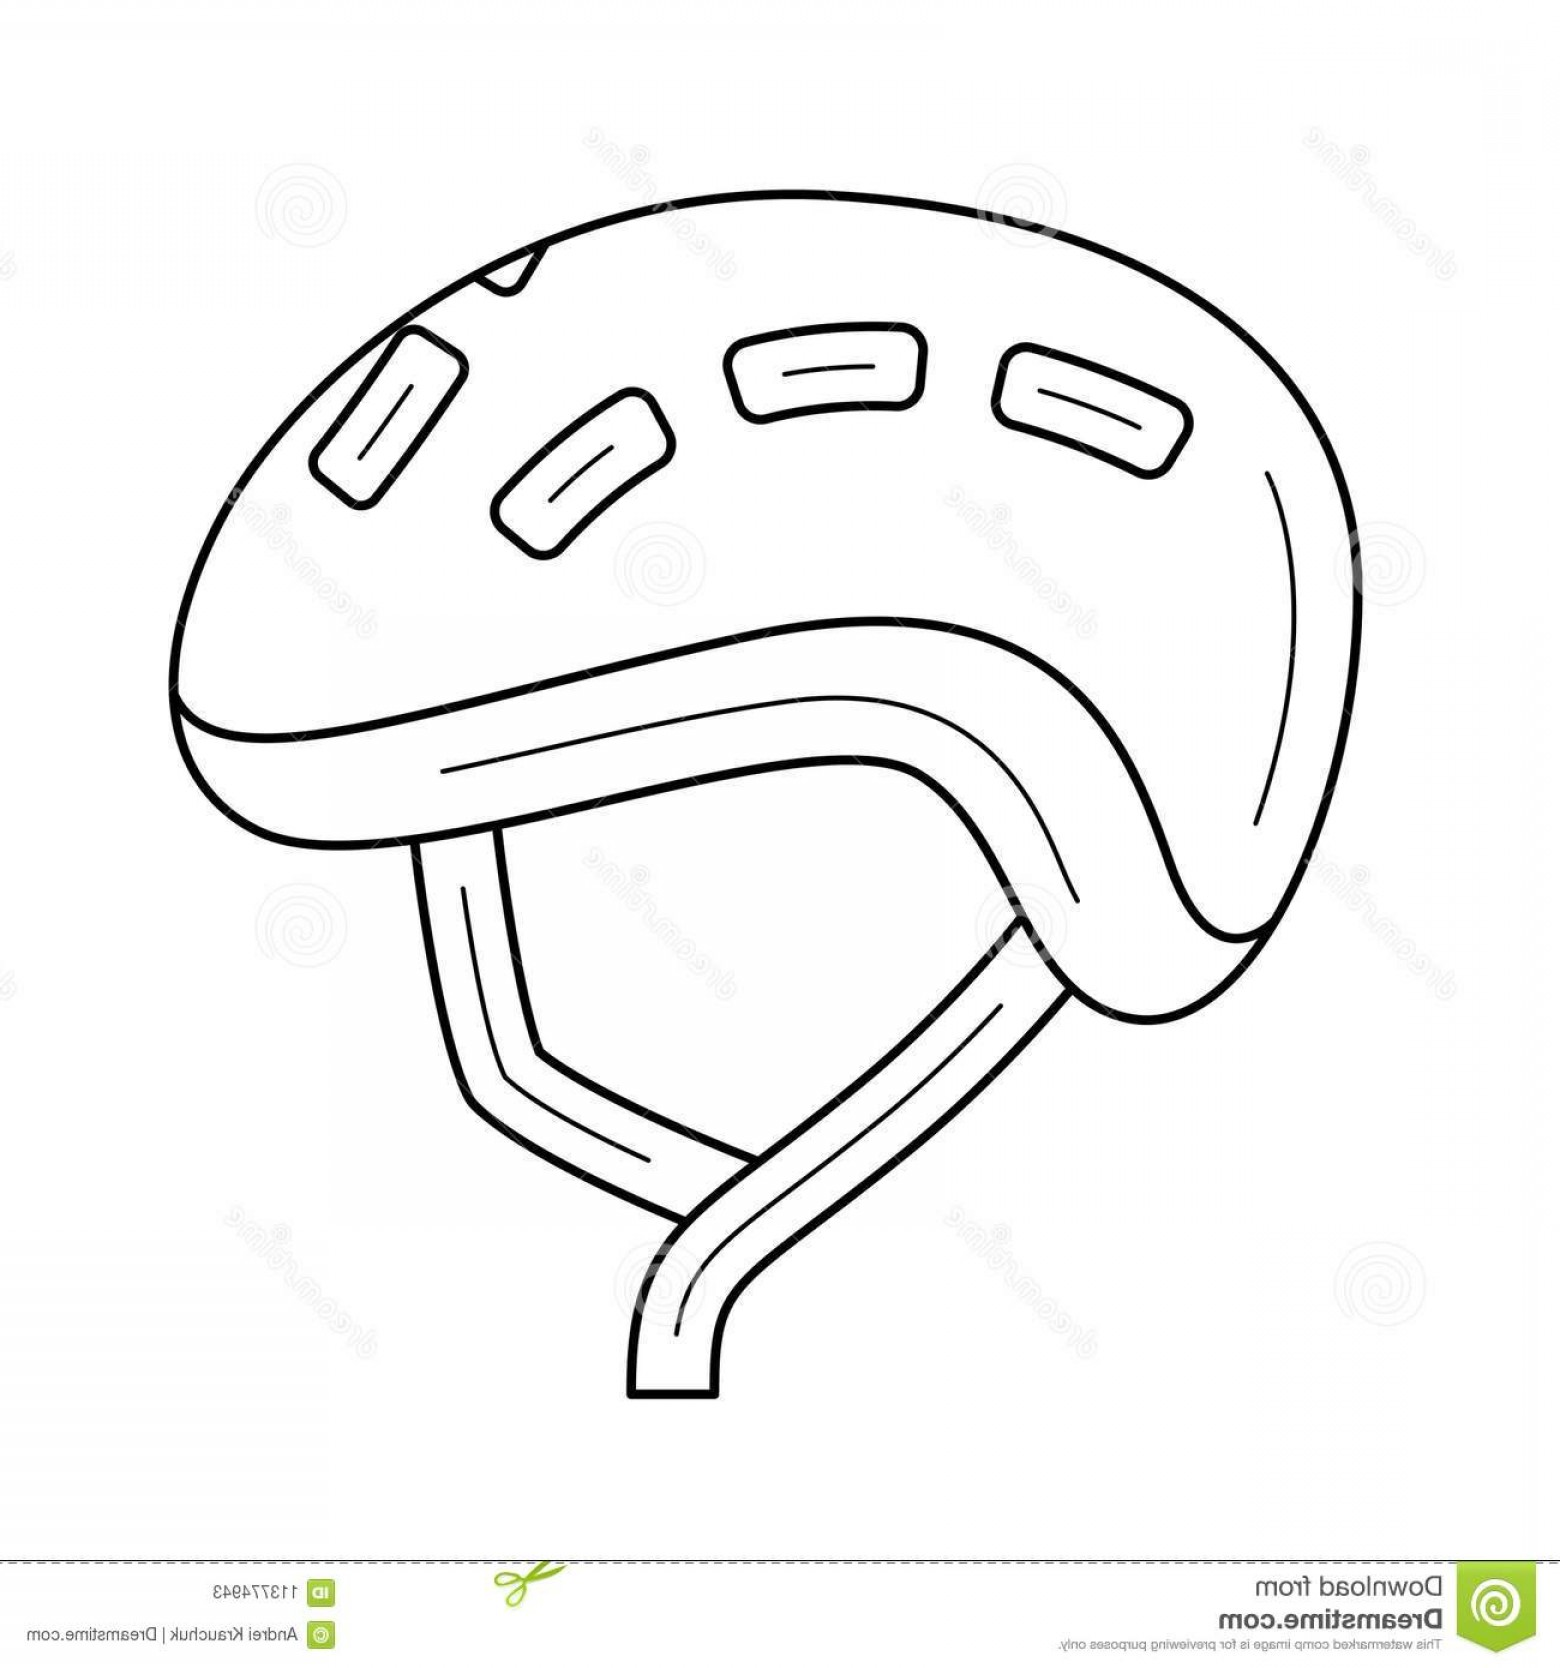 Motorcycle Helmet Vector Art: Bike Helmet Vector Line Icon Isolated White Background Bike Helmet Line Icon Infographic Website App Icon Designed Image